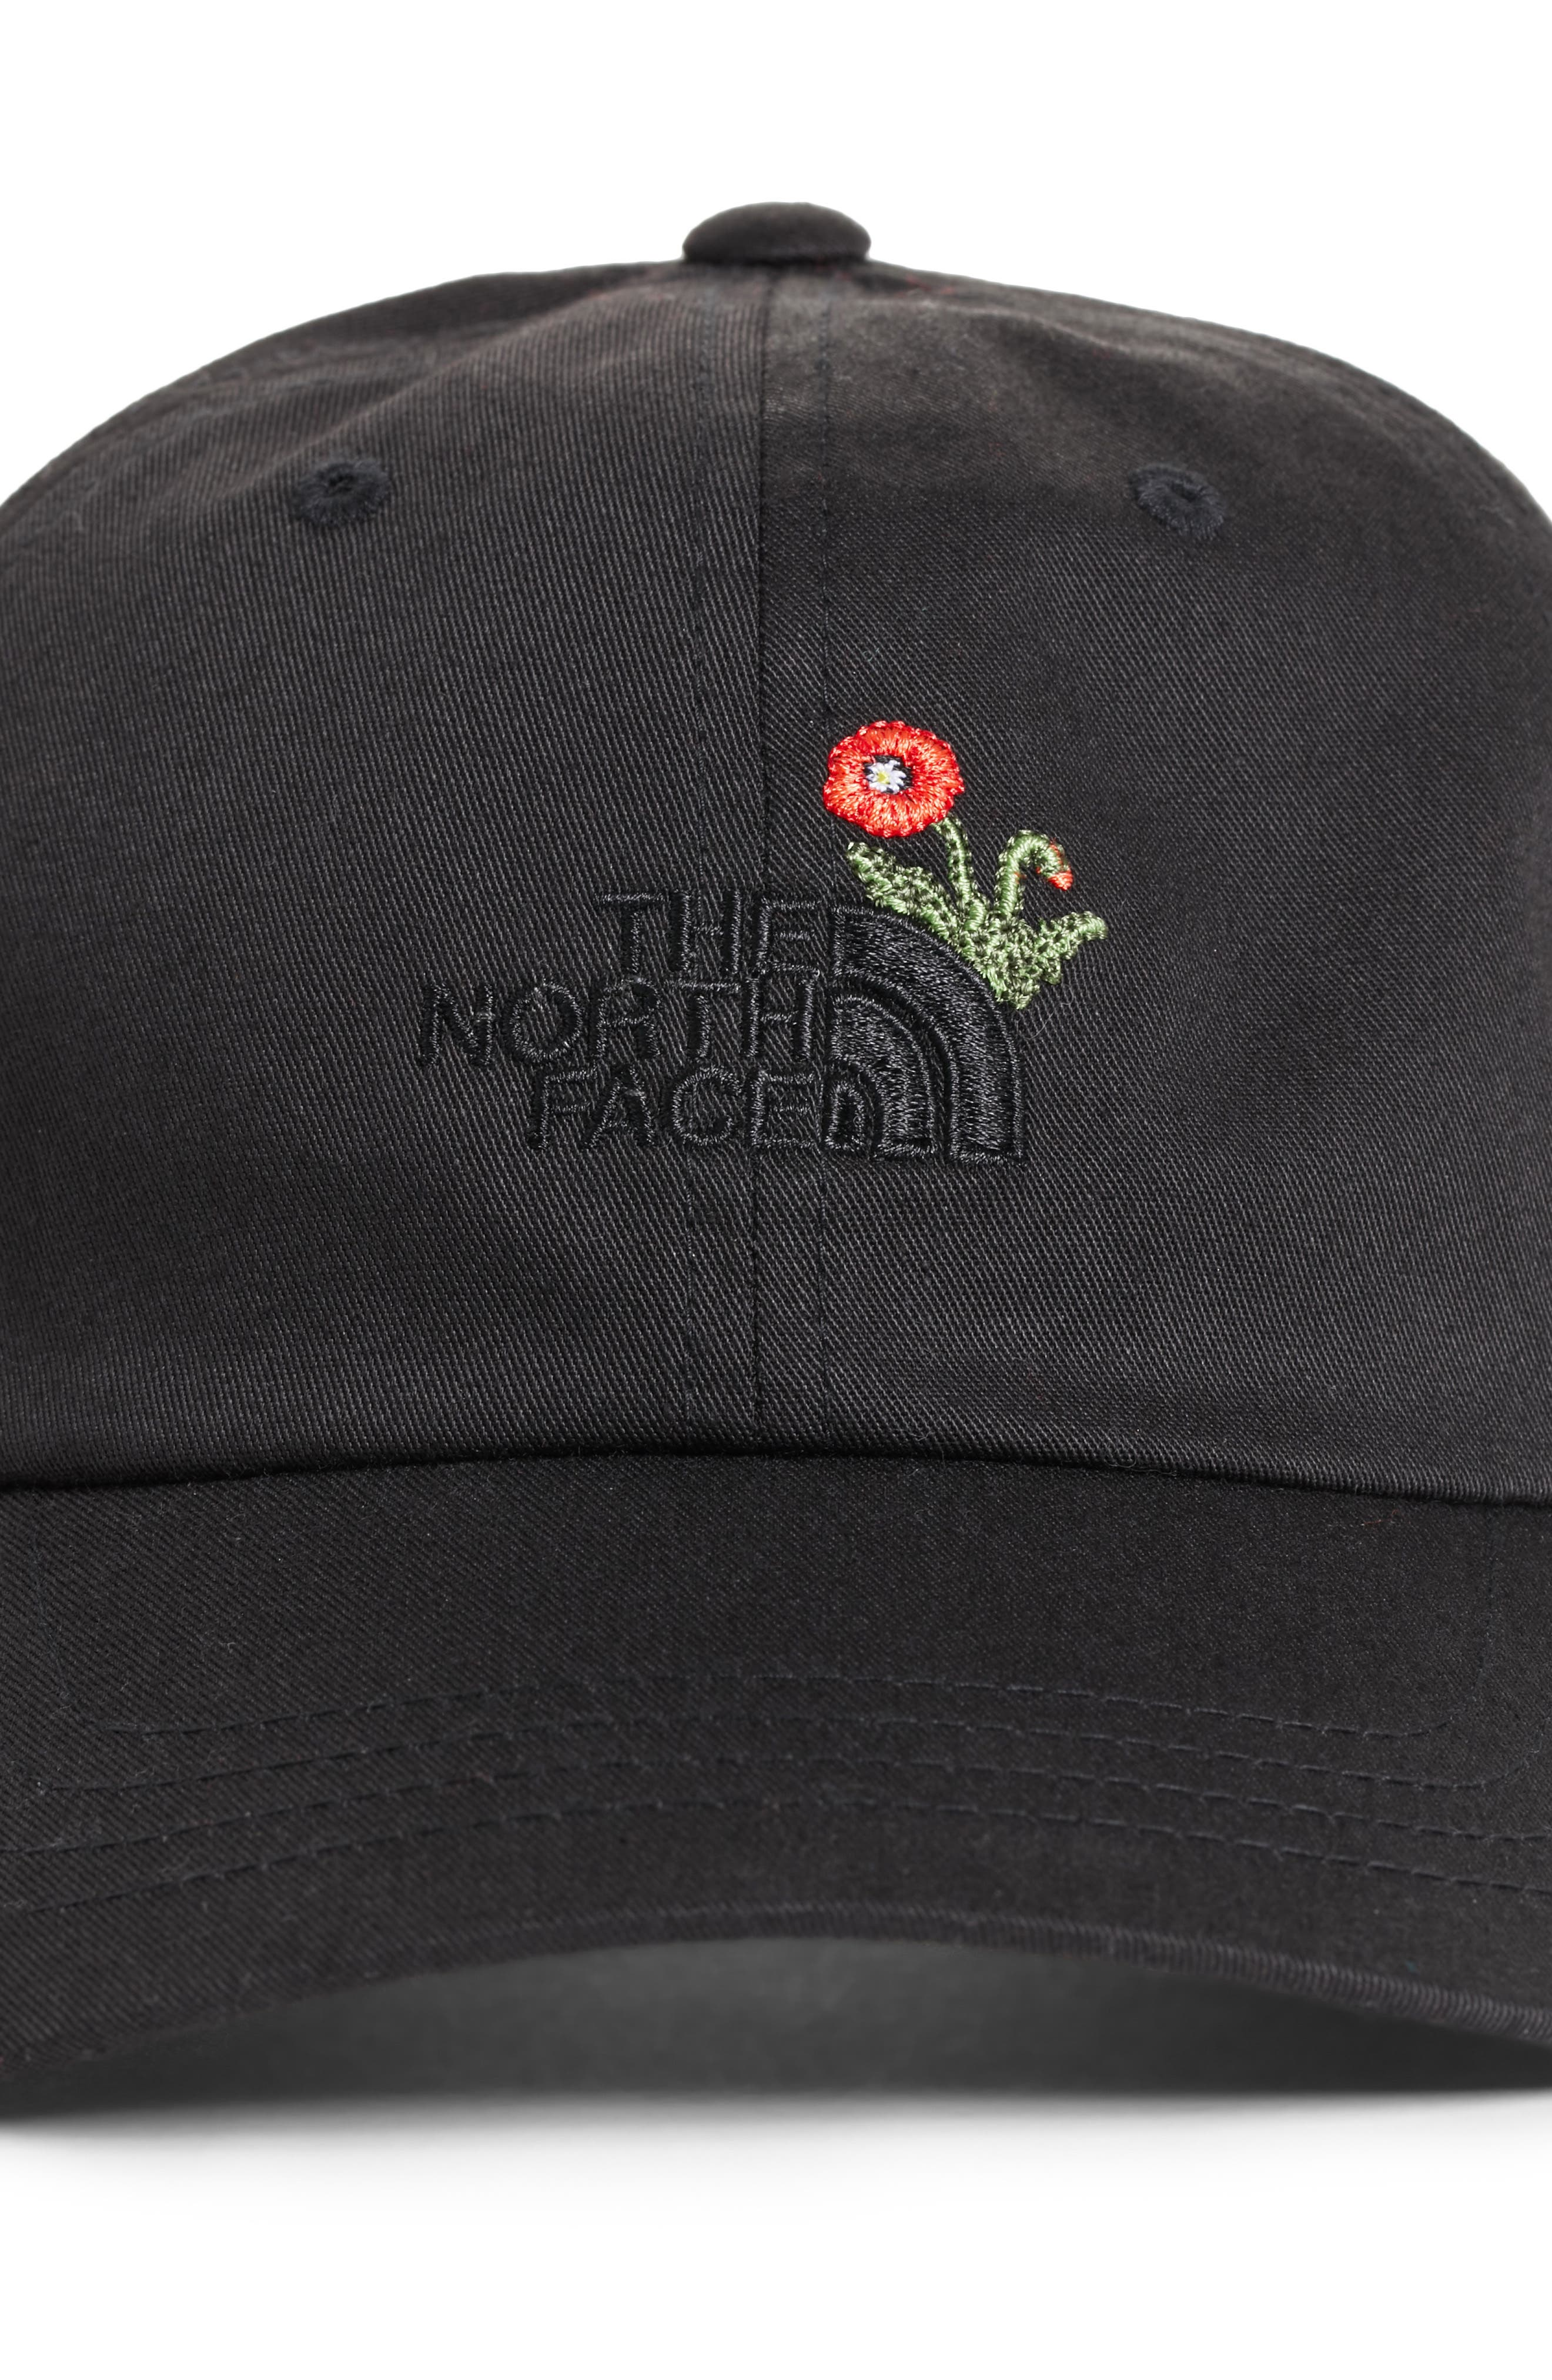 Norm Poppy Embroidered Adjustable Cap,                             Alternate thumbnail 2, color,                             001